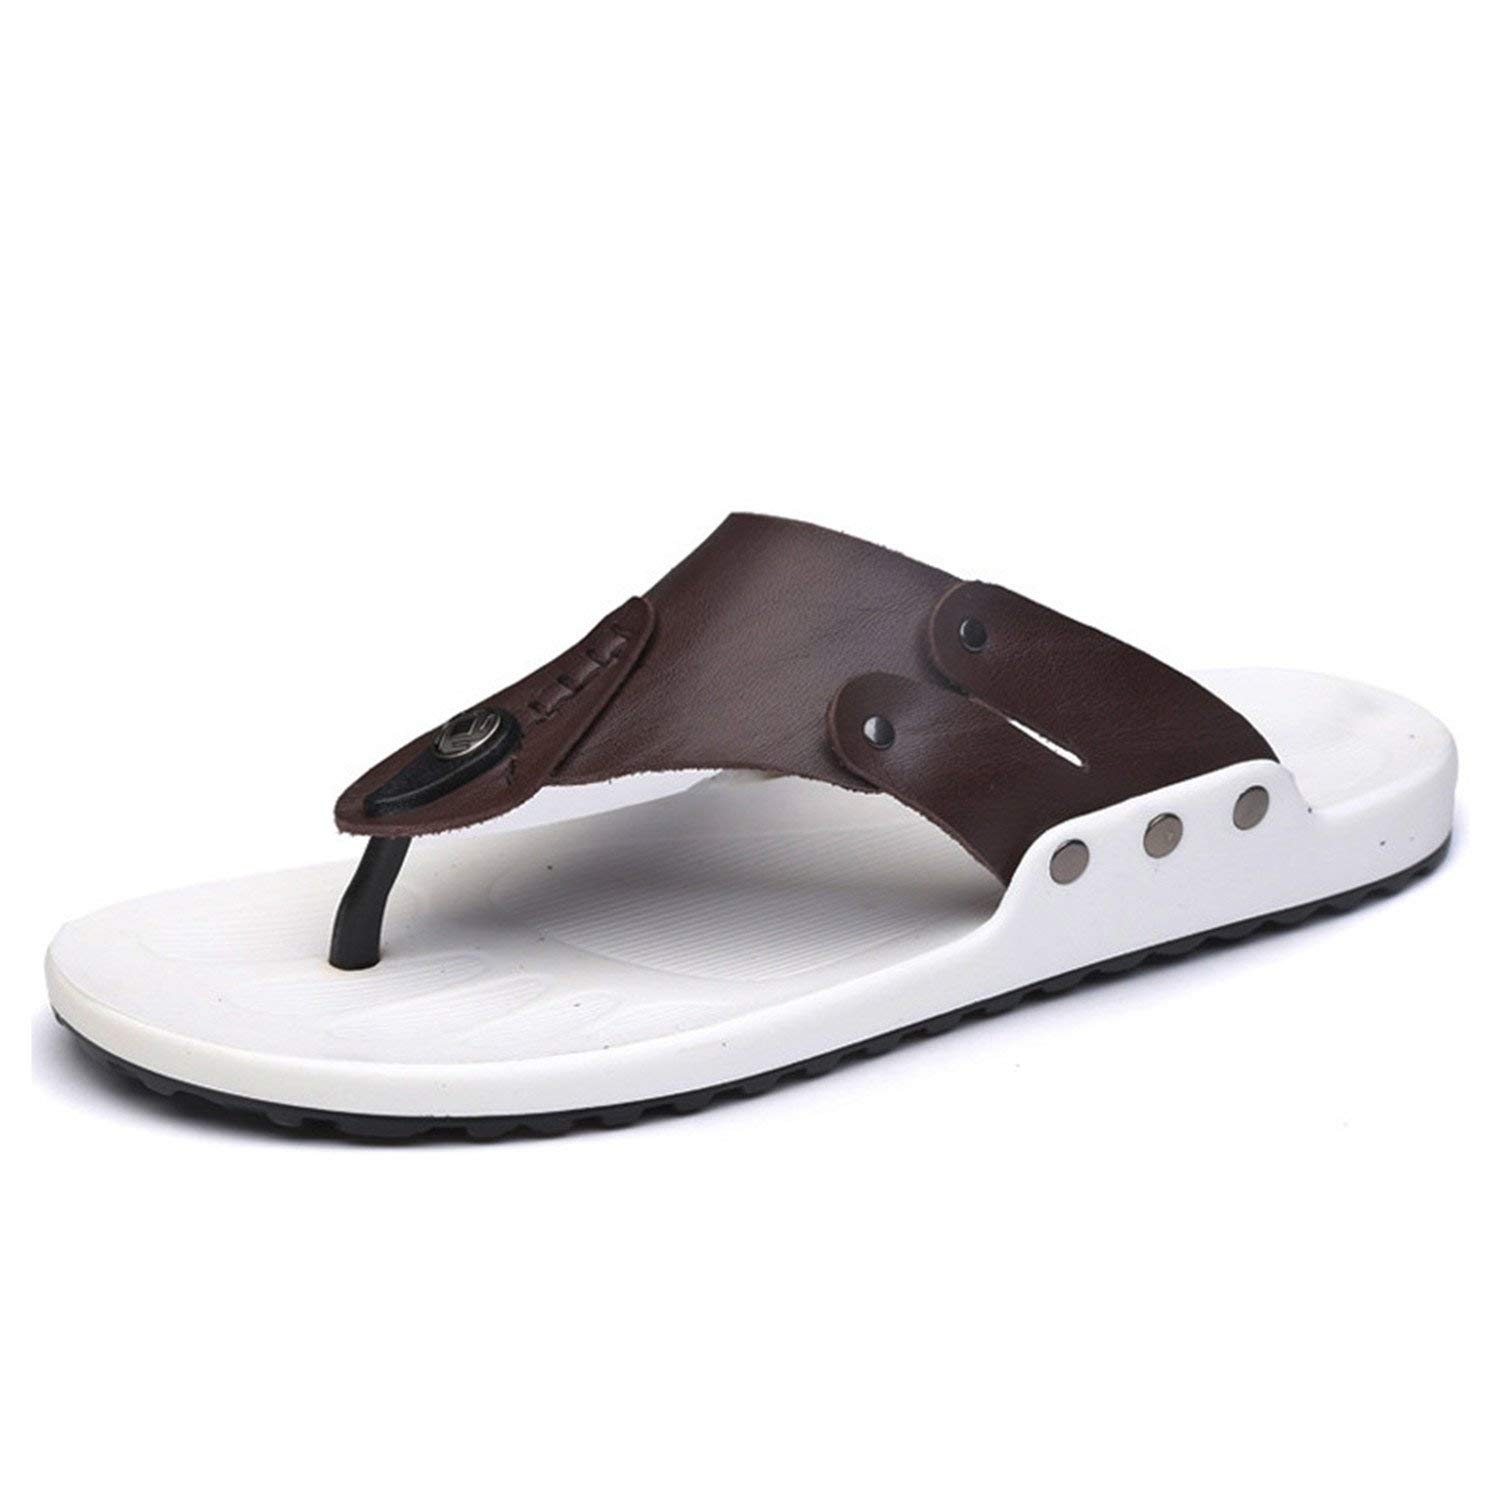 a4546f79ac110 Get Quotations · Phillip Dudley Genuine Leather Men Slippers Flip Flops  Casual Male Beach Slippers Flip Flop